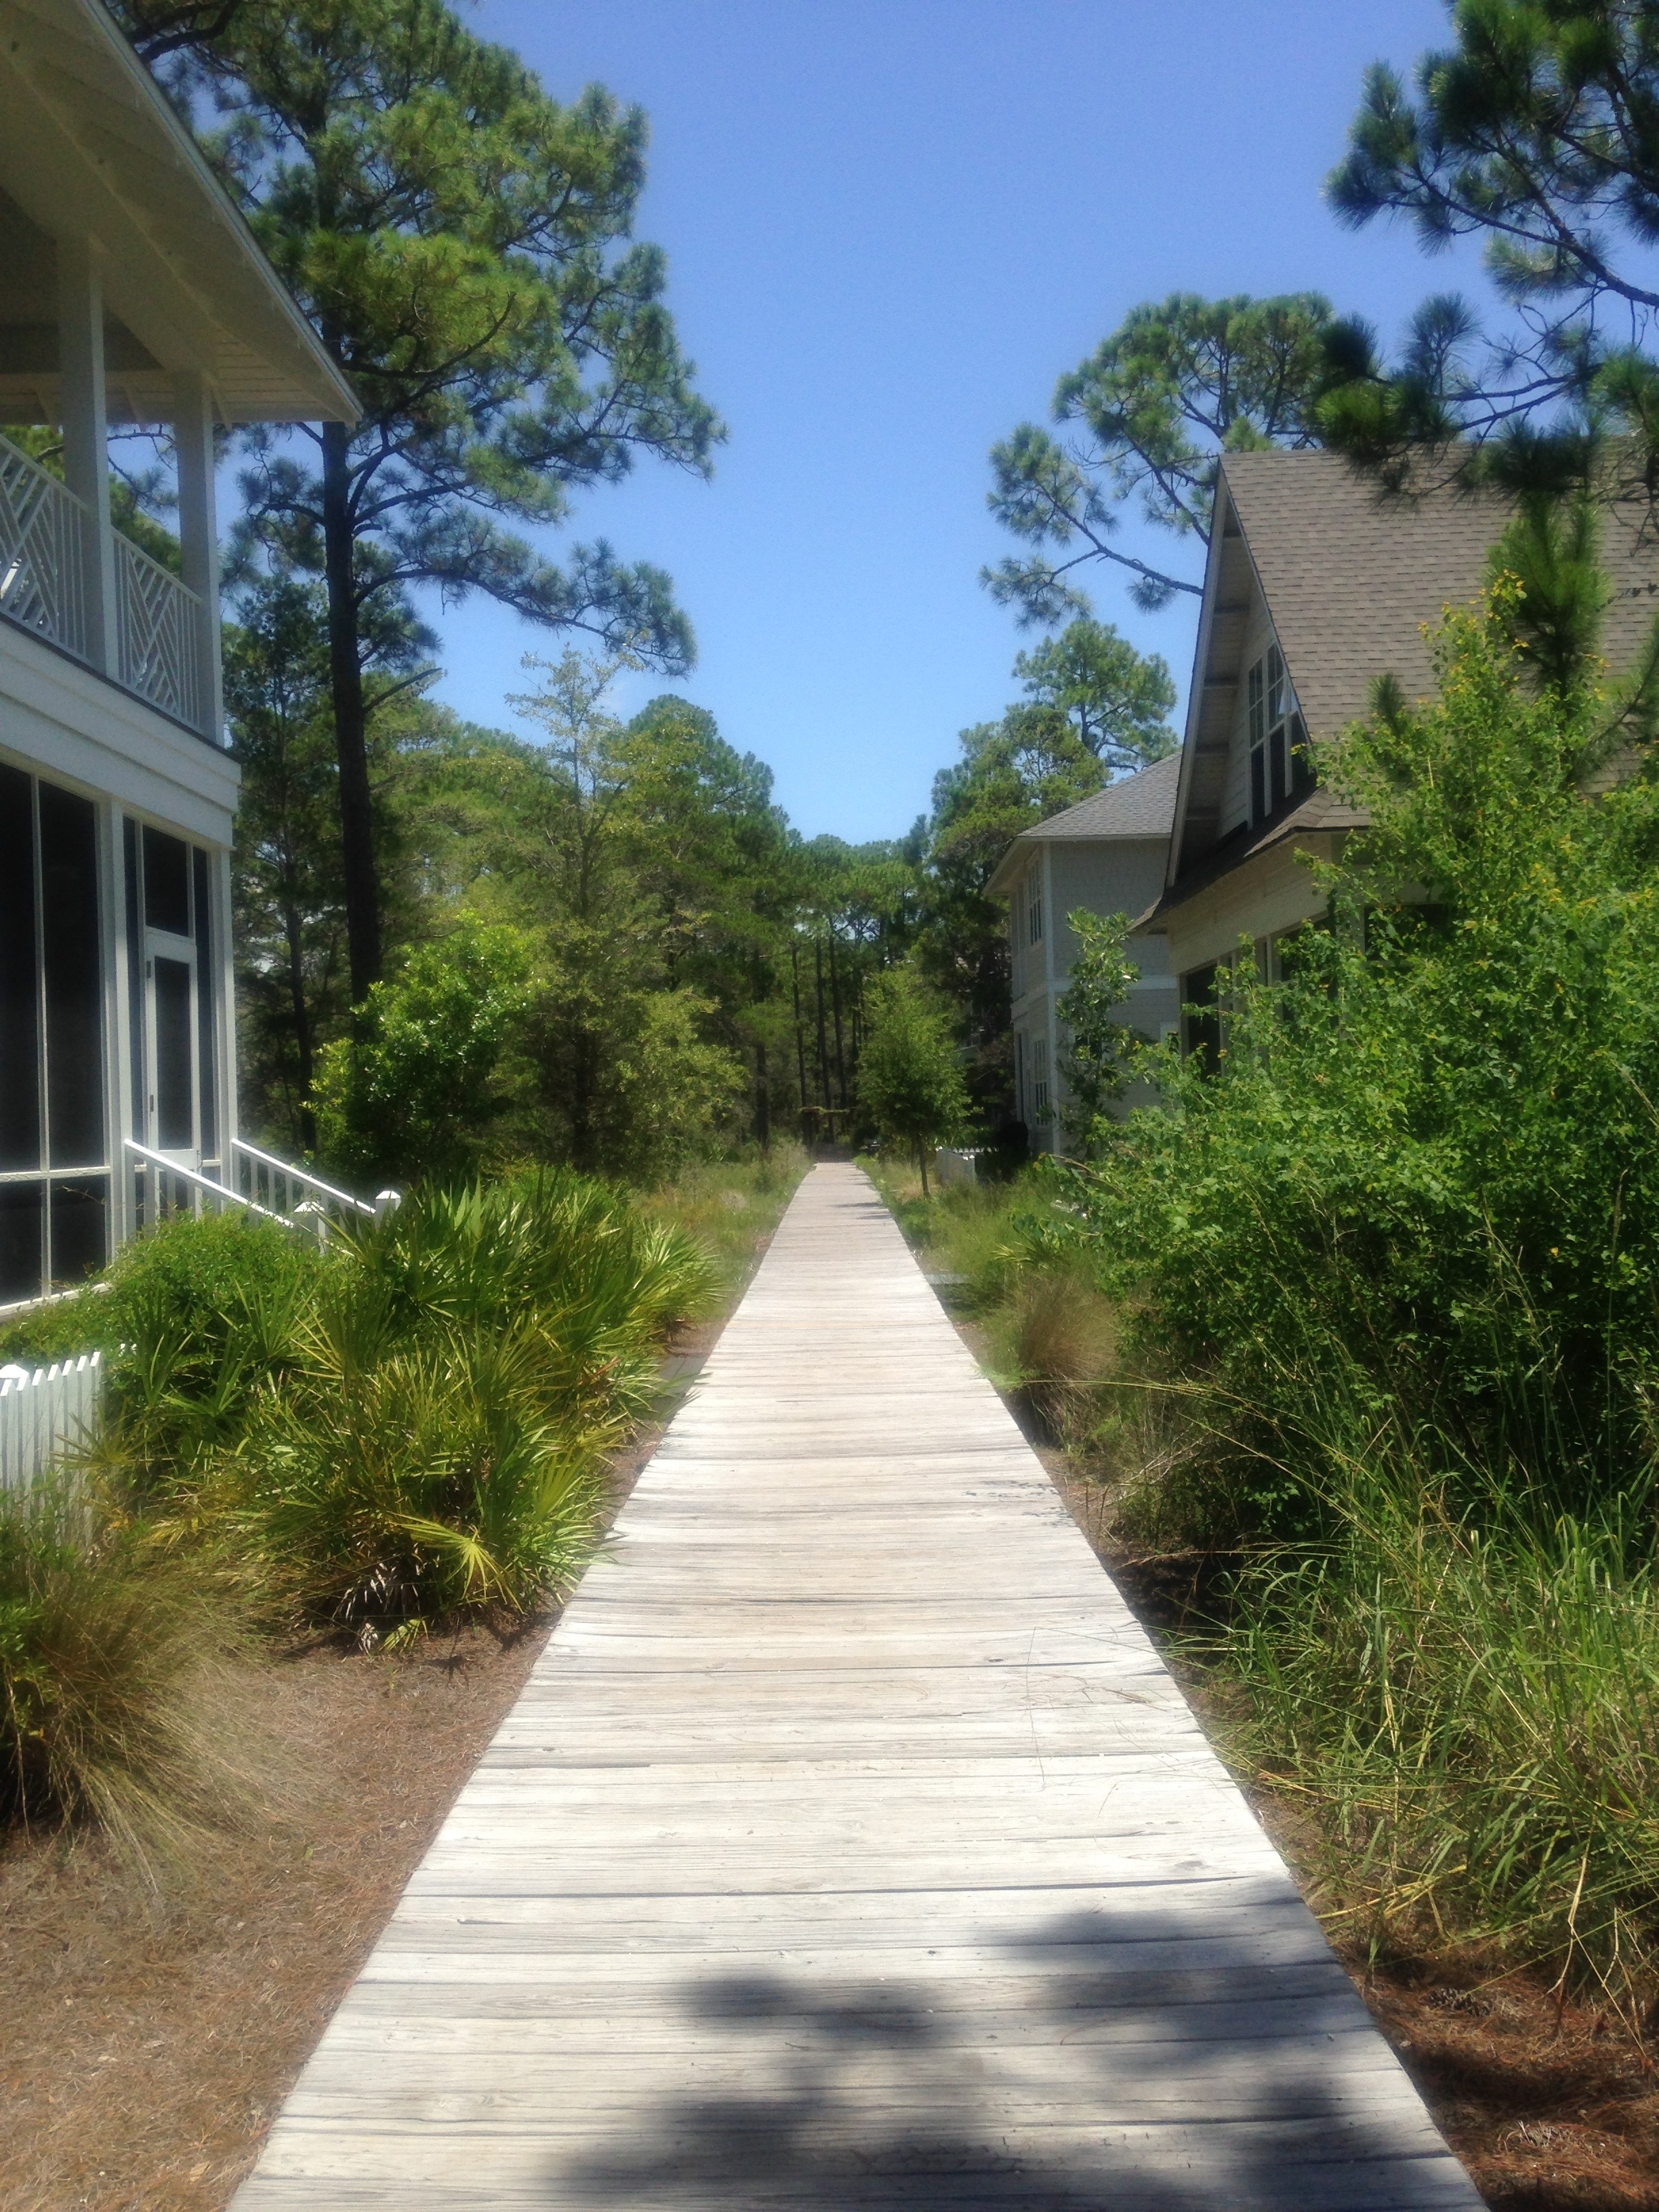 A bike path to the beach, Watersound. Photo by Chic Travels.